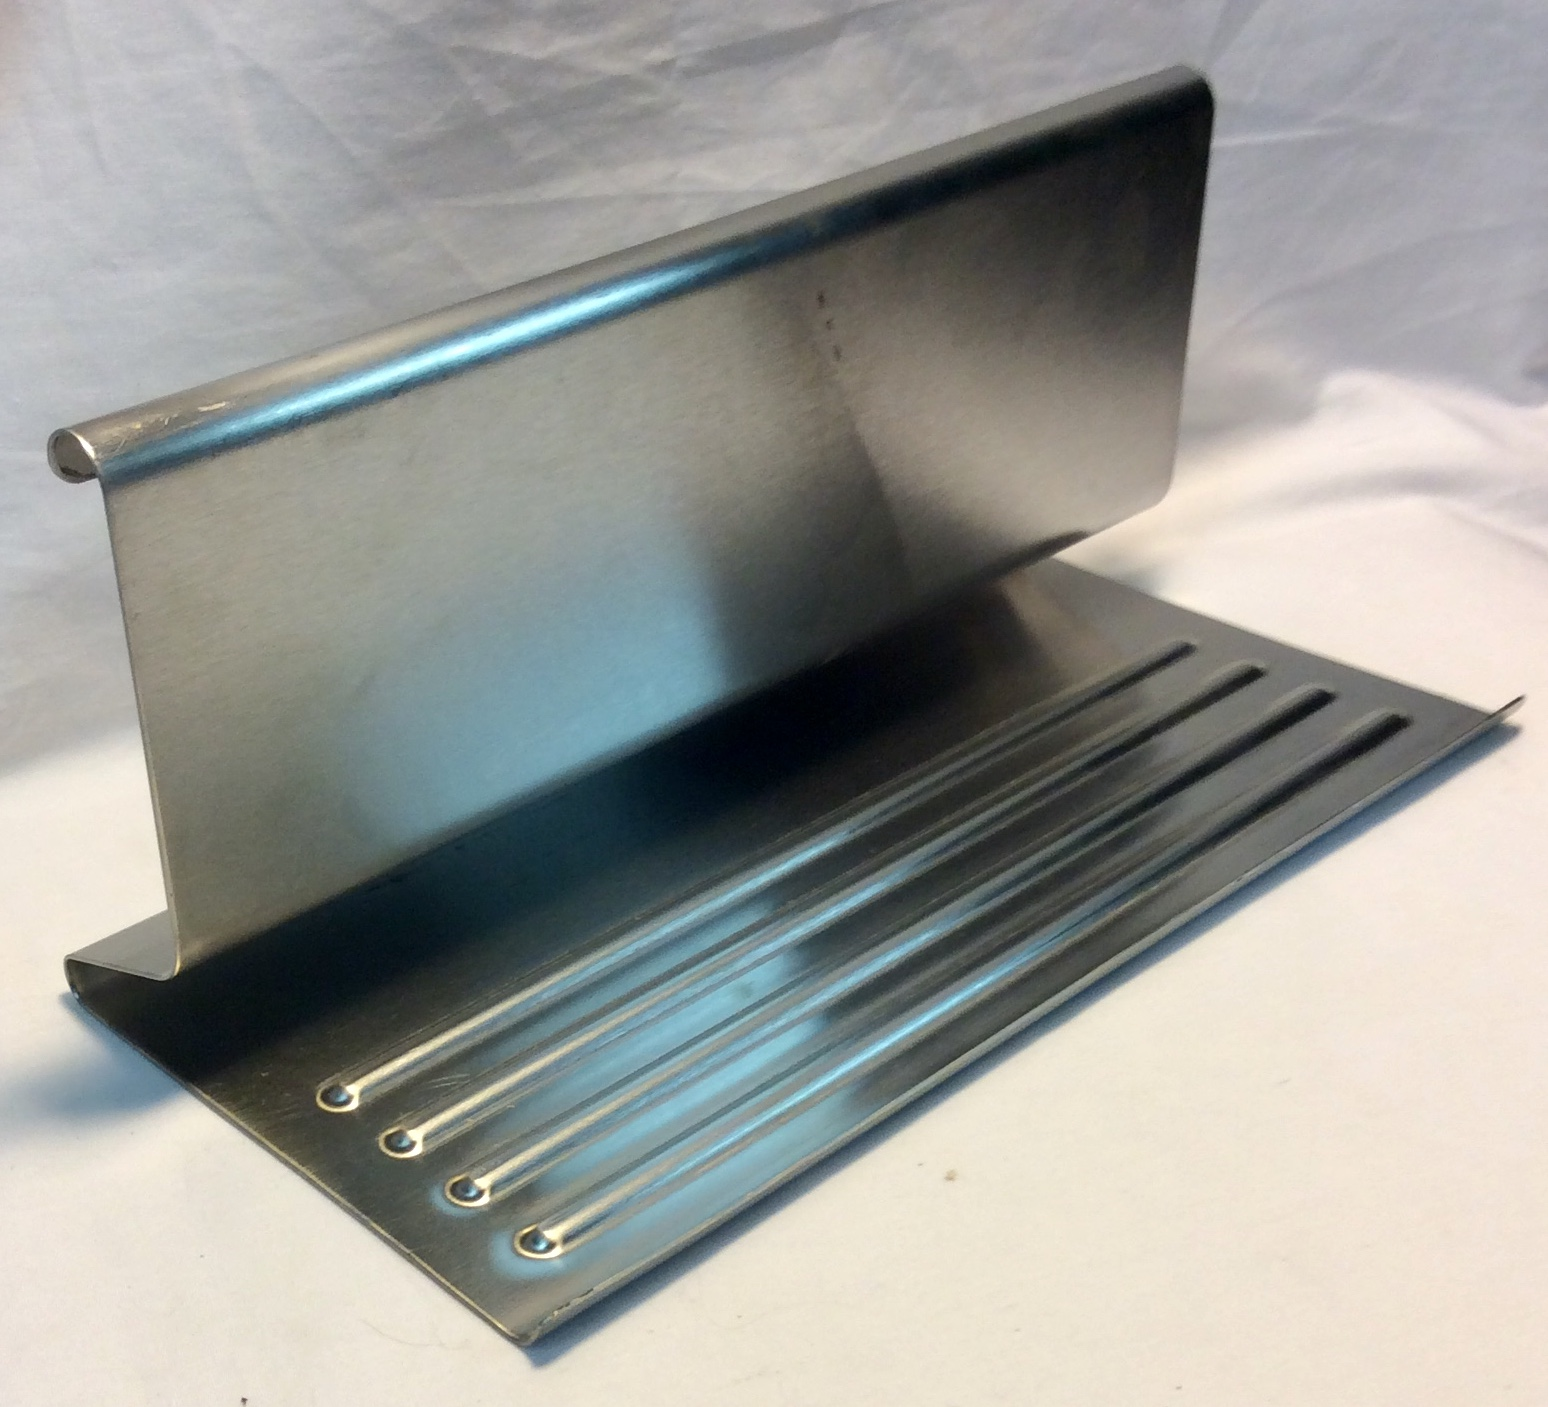 Stainless Steel Tablet Stand